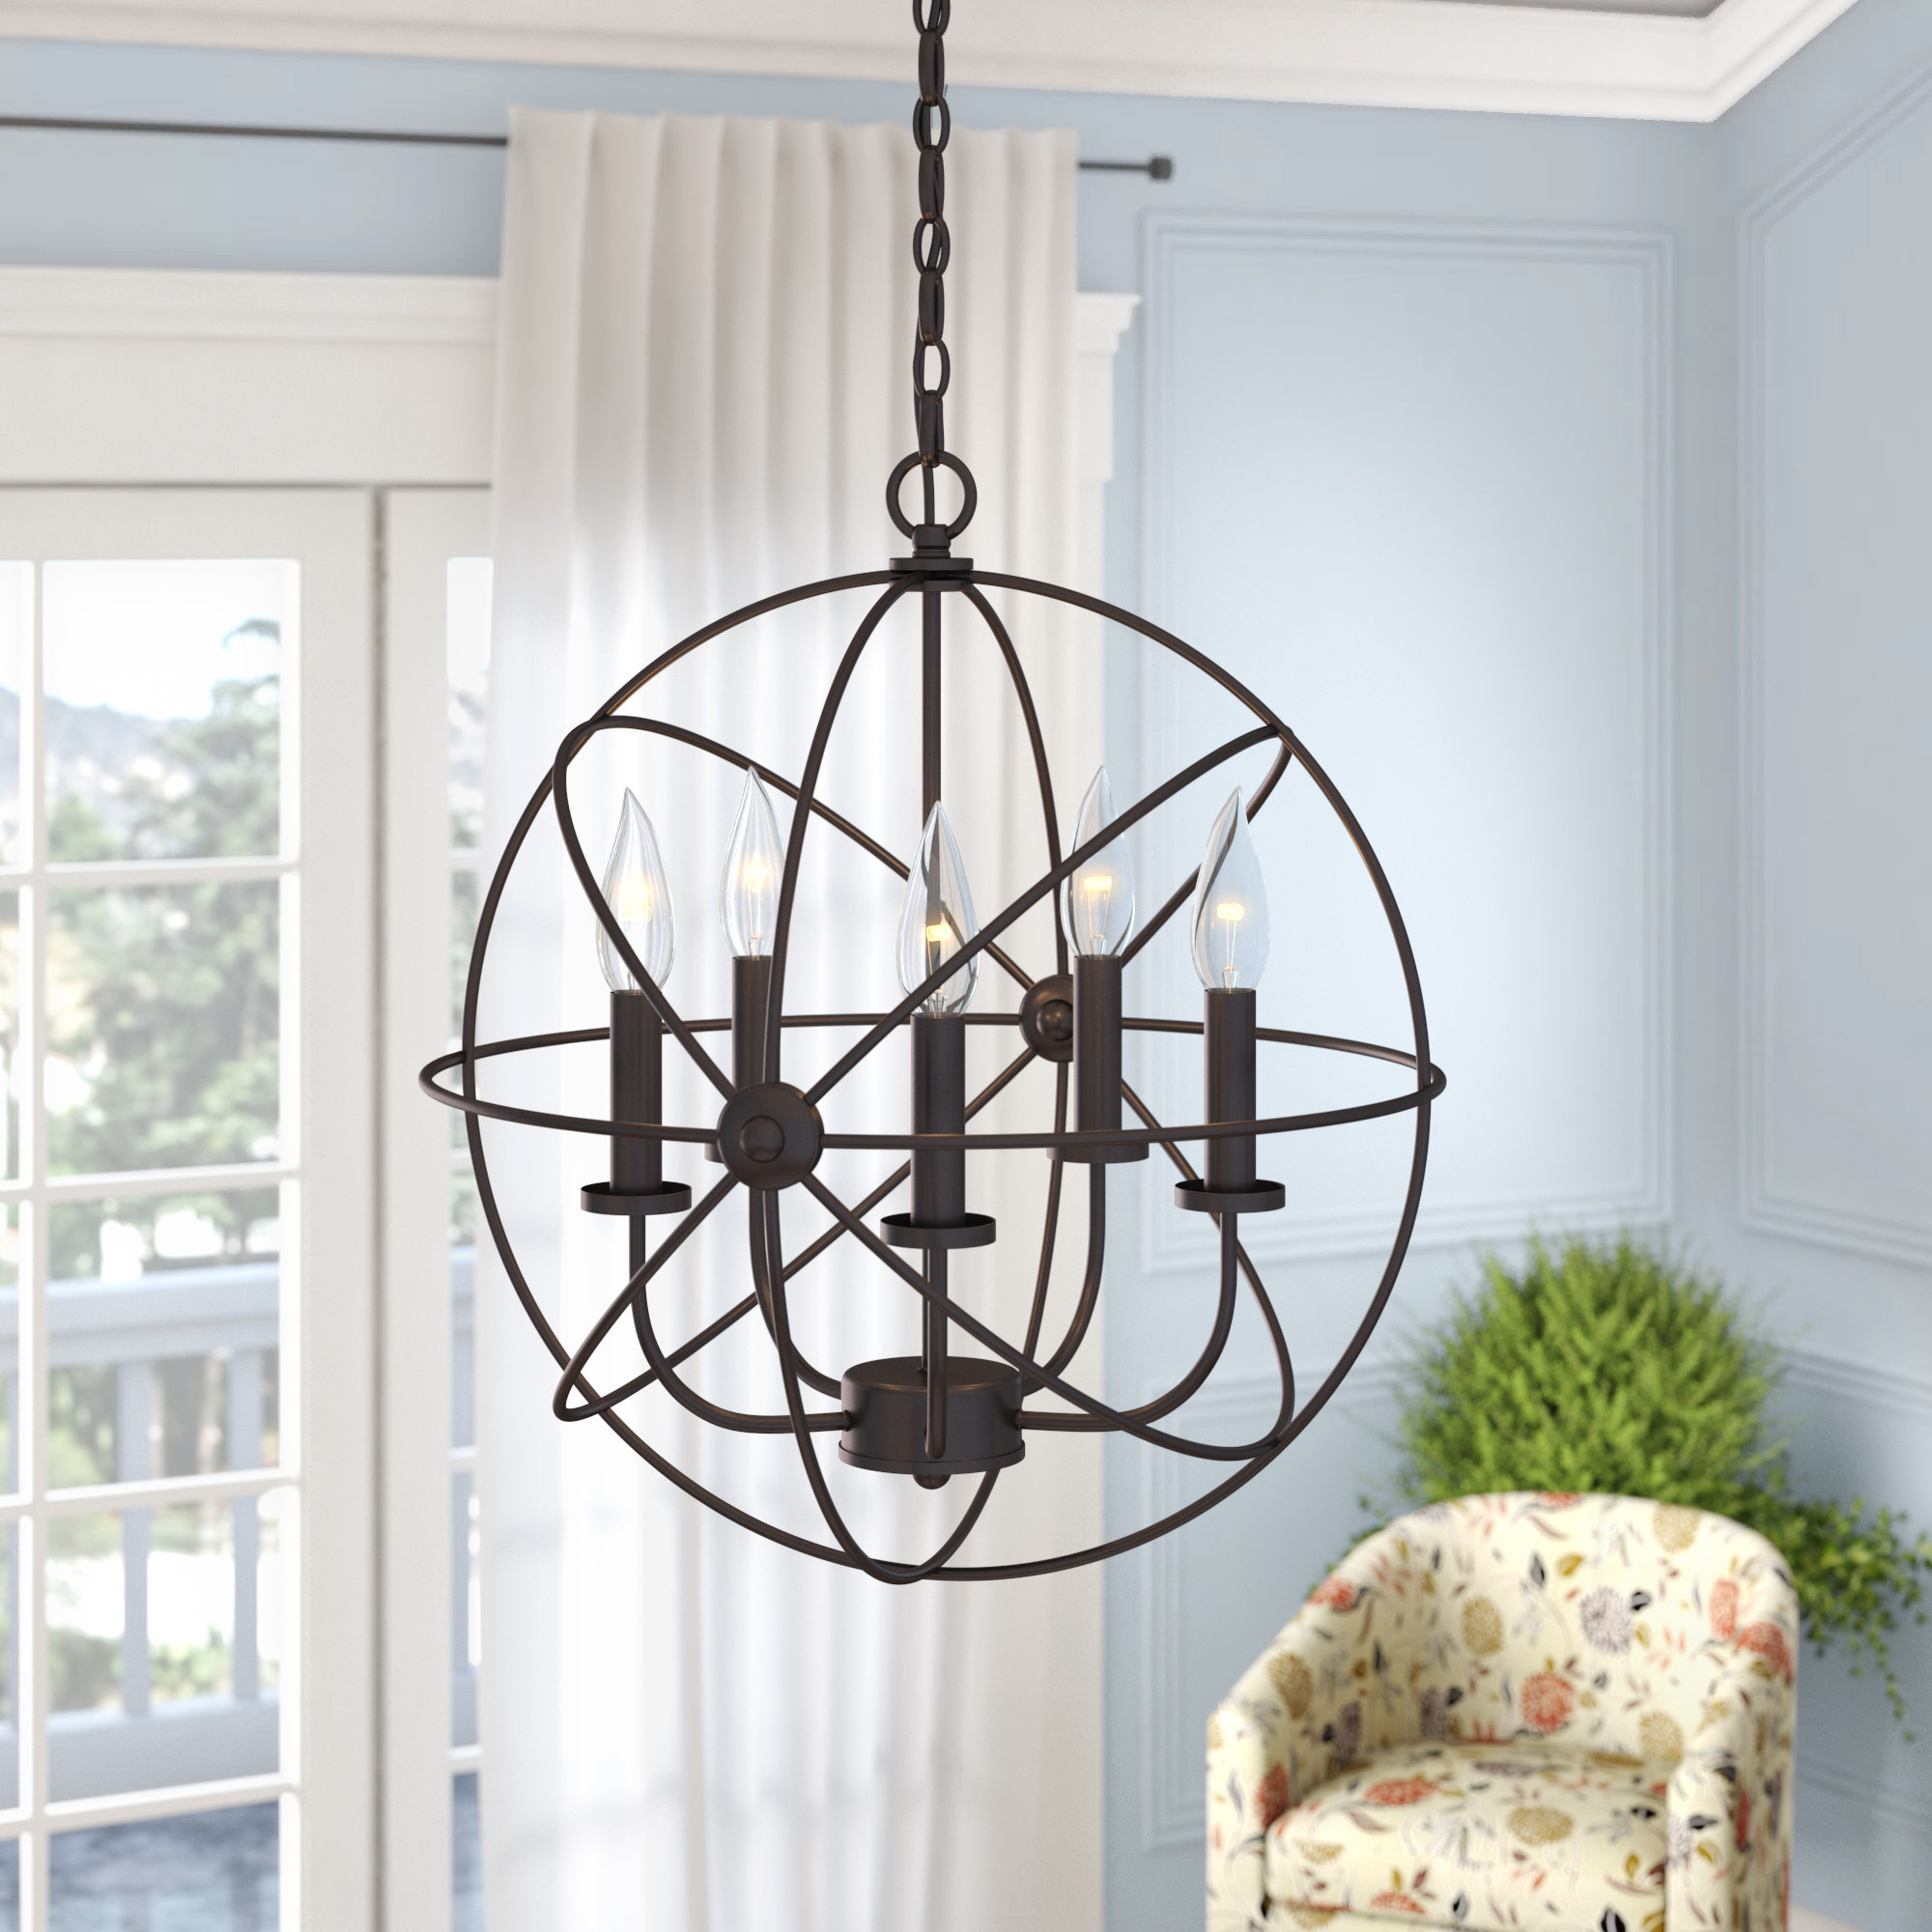 Caius 5 Light Globe Chandelier With Regard To Verlene Foyer 5 Light Globe Chandeliers (View 17 of 30)